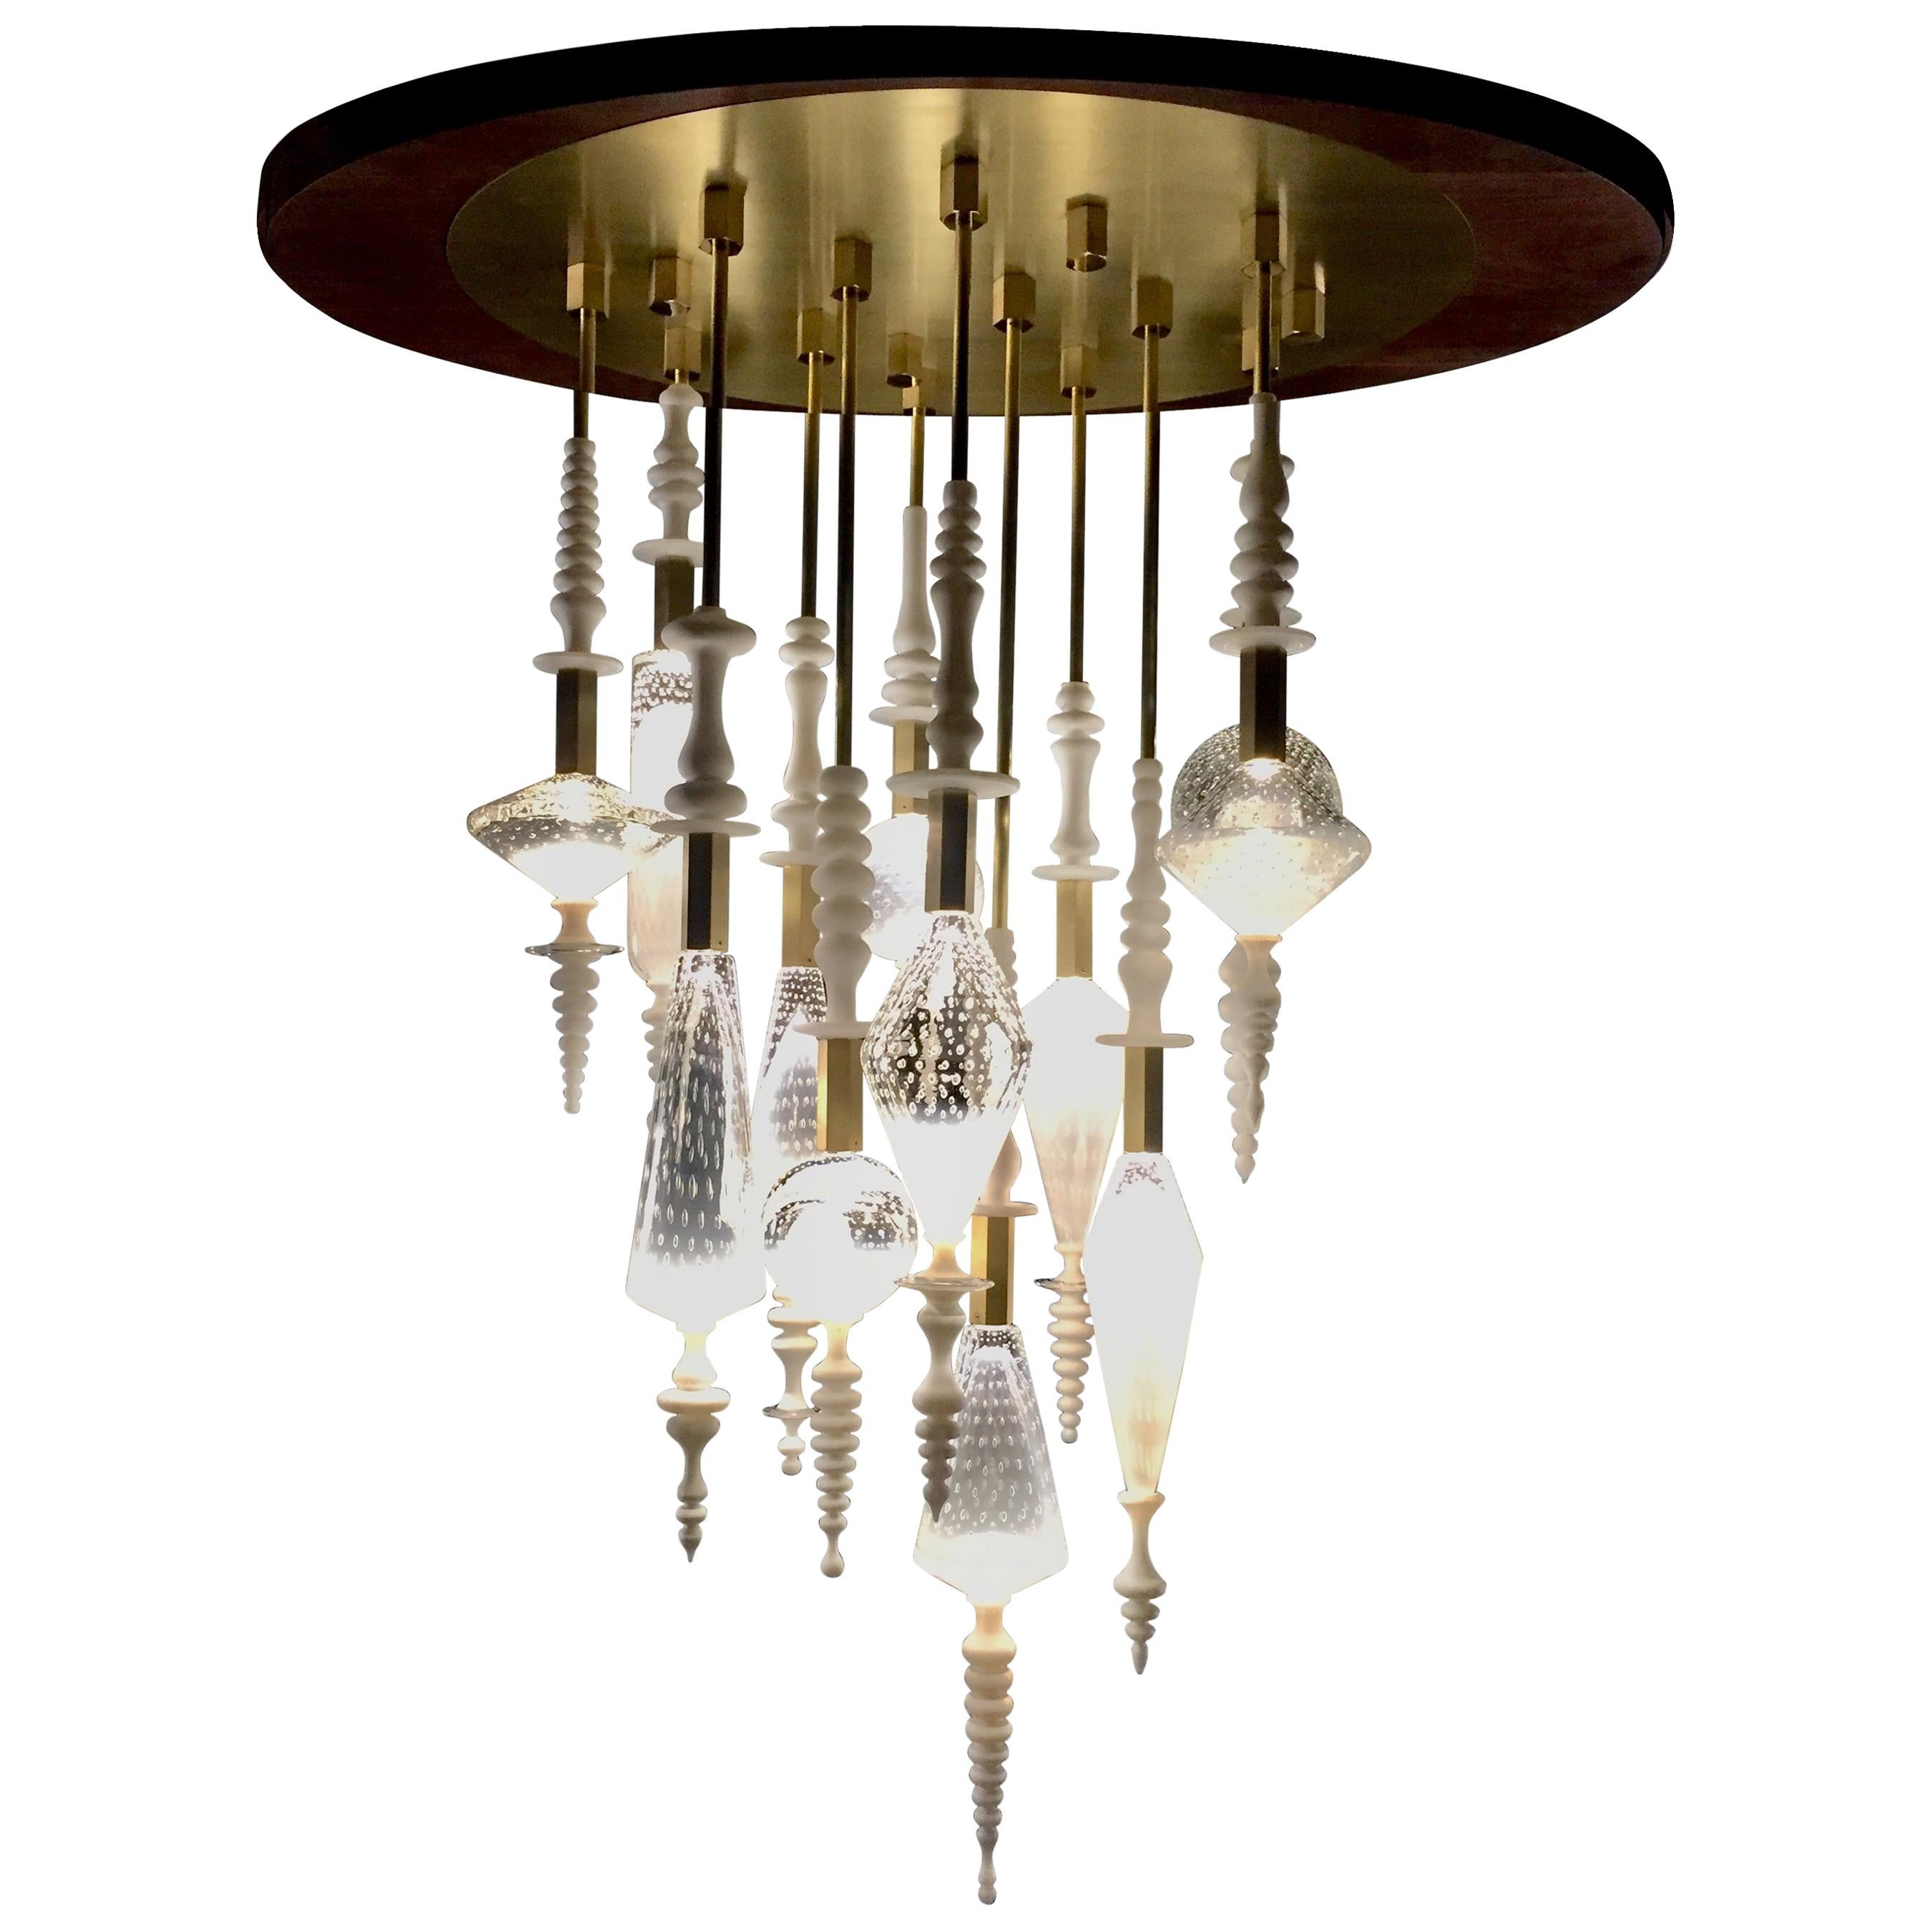 Seed Cloud Chandelier in Blown Glass by Andy Paiko